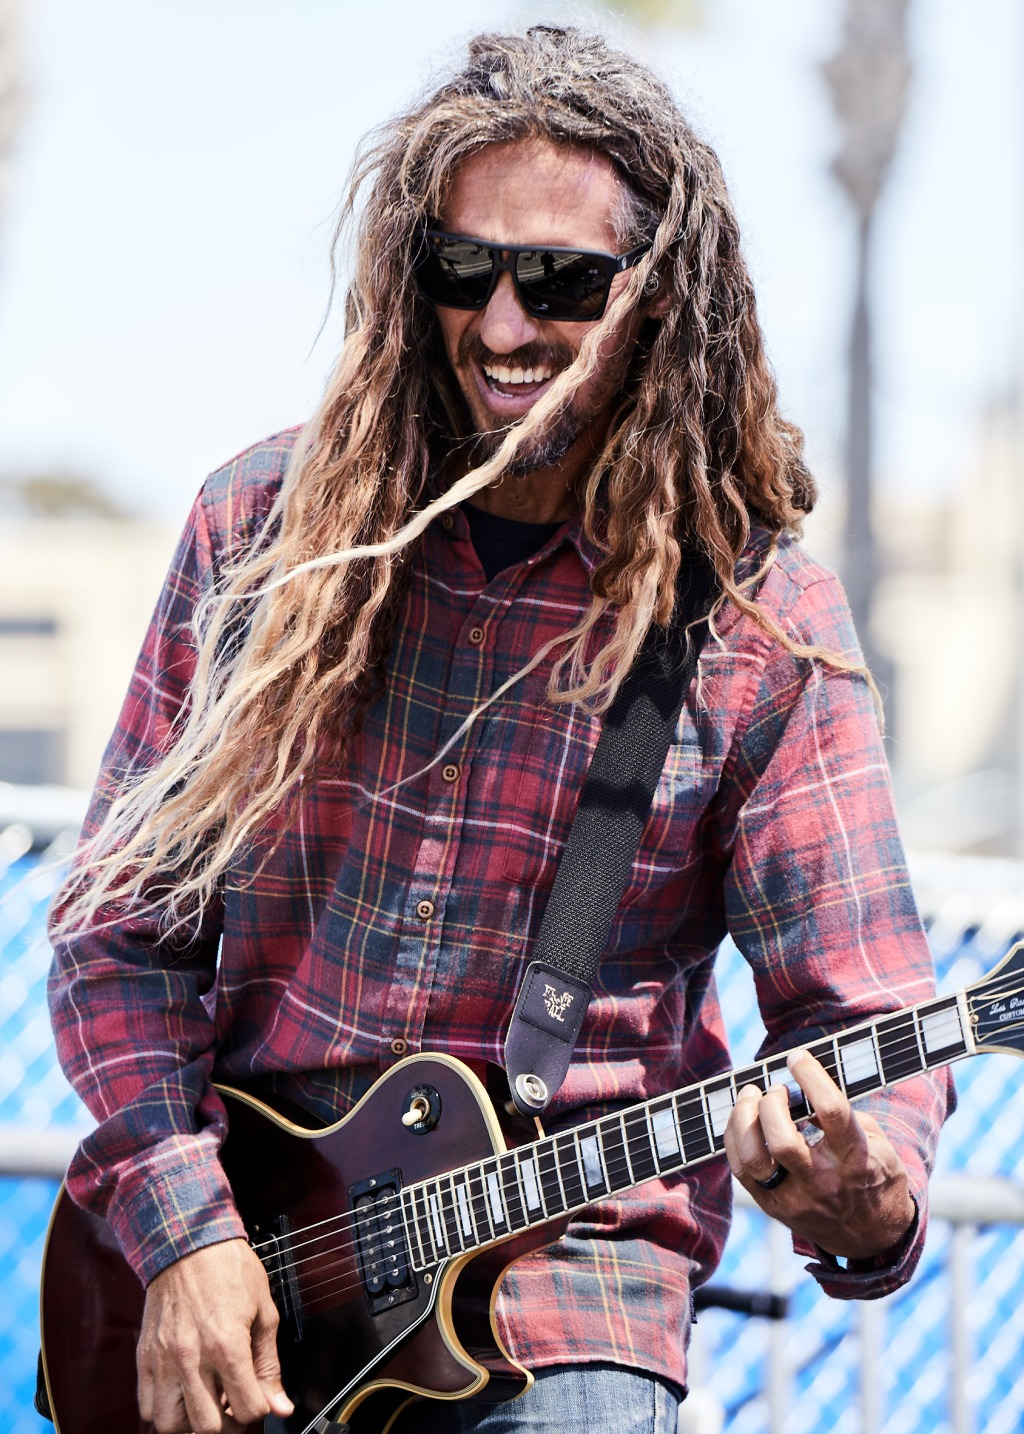 Professional surfer Rob Machado performs at BeachLife Music Festival in Redondo Beach, California on May 3-5th, 2019.